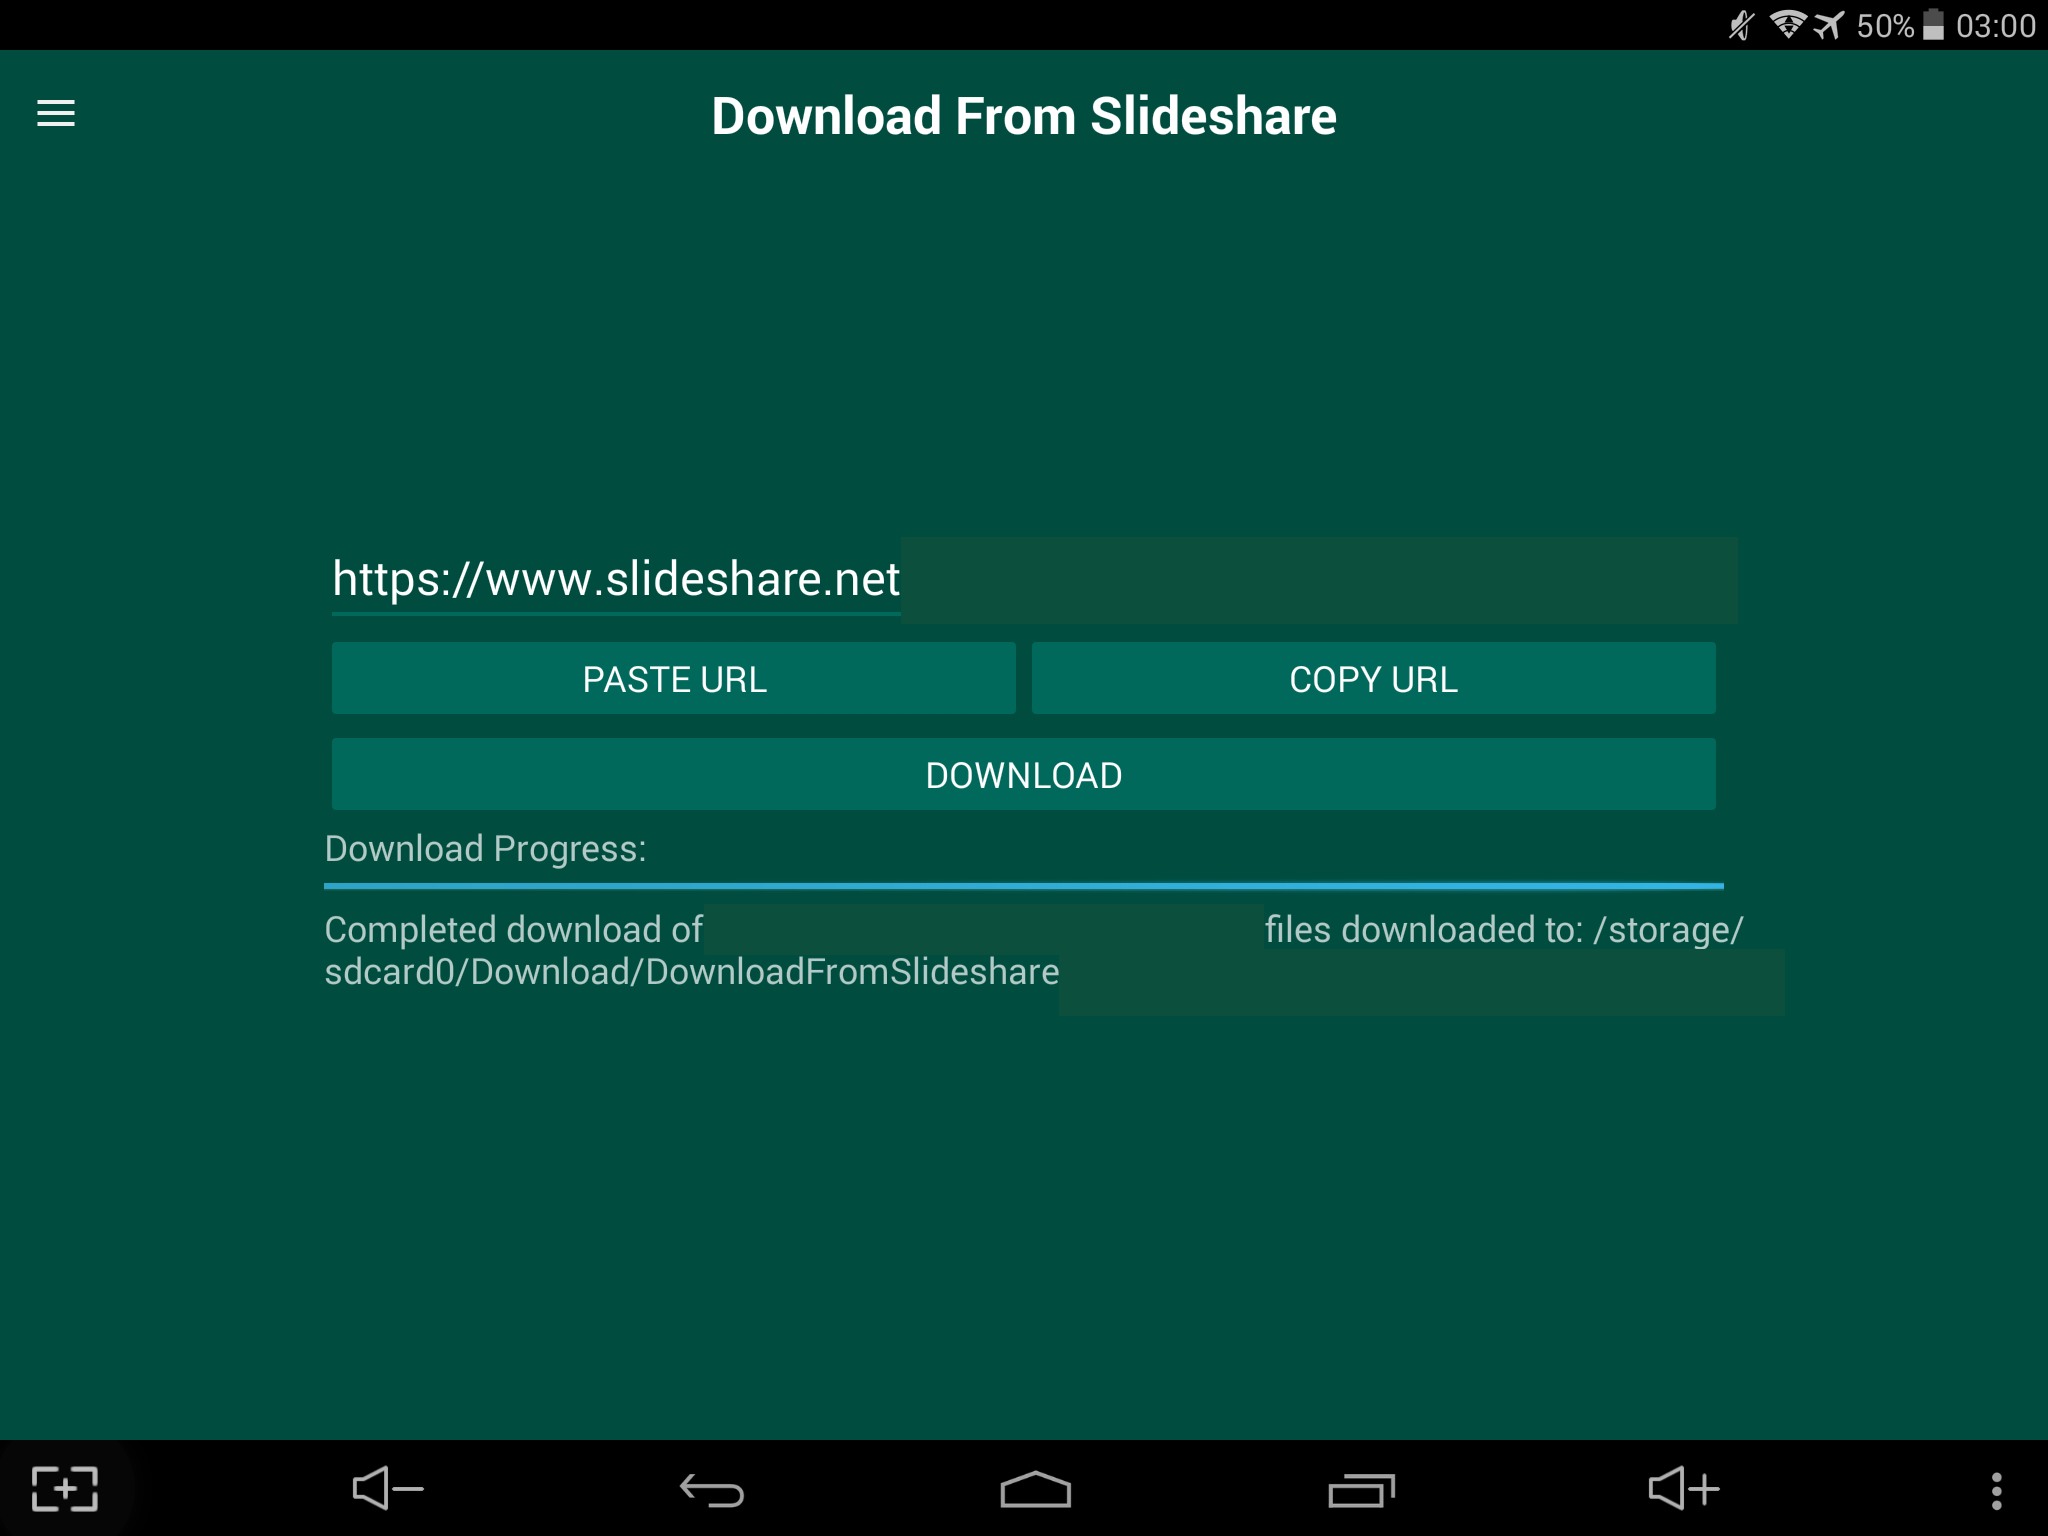 How To Pdf From Slideshare For Free